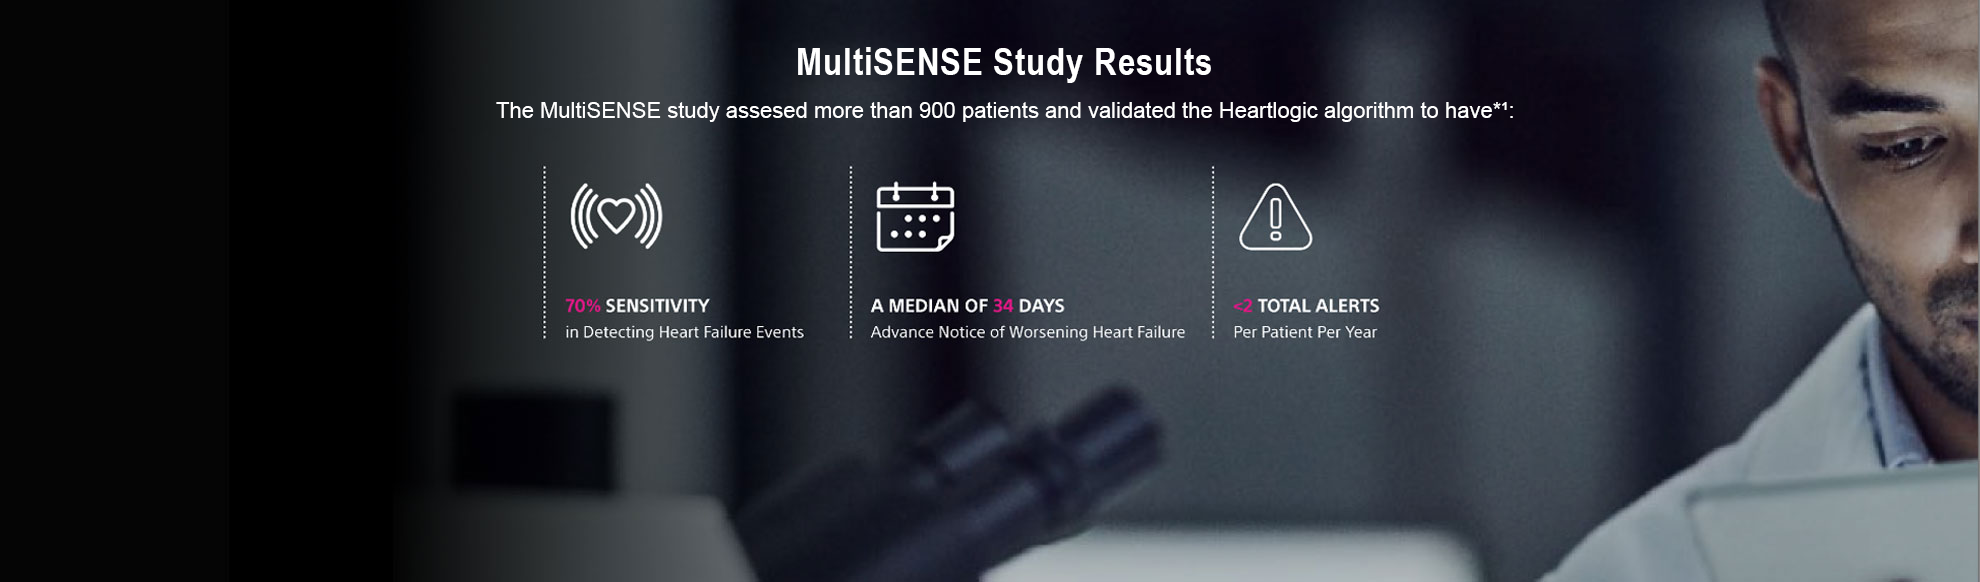 MultiSENSE Study Results*1